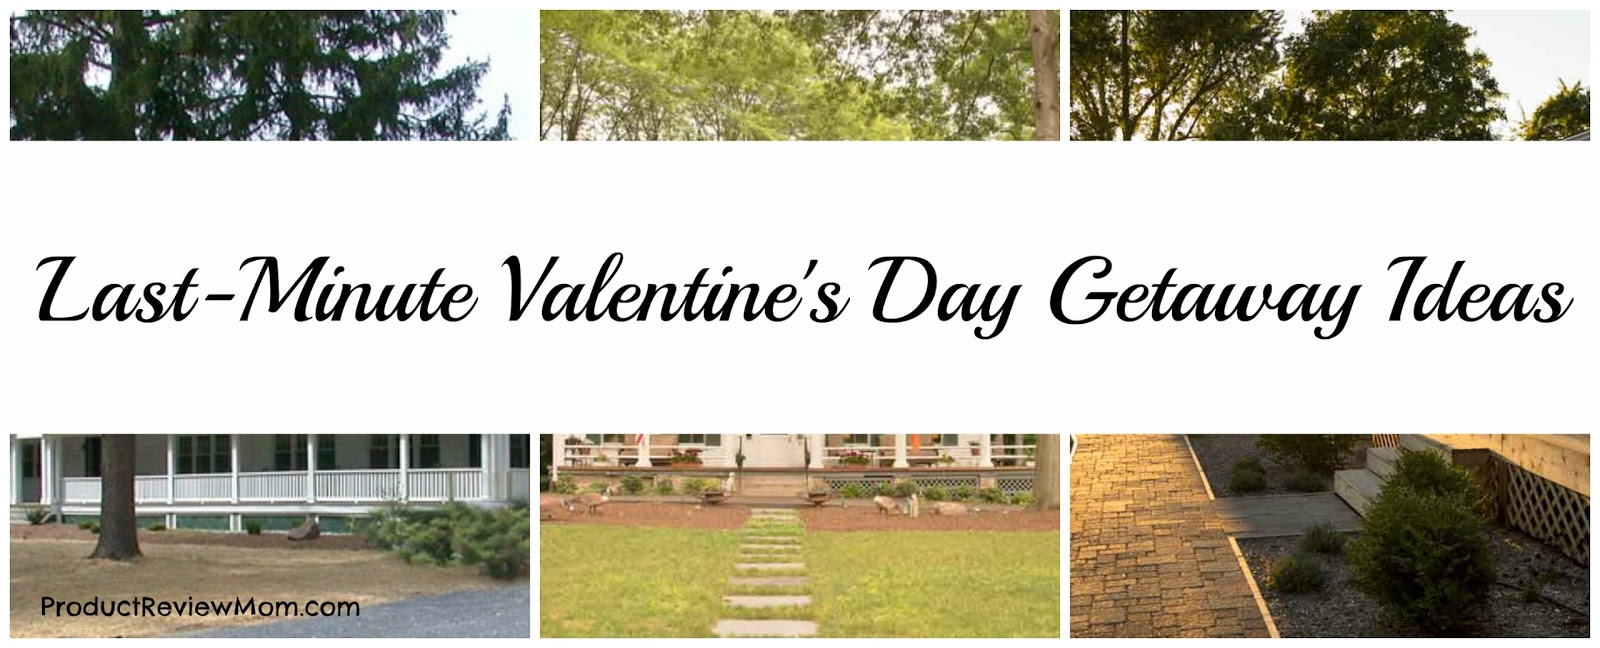 last minute valentine 39 s day getaway ideas